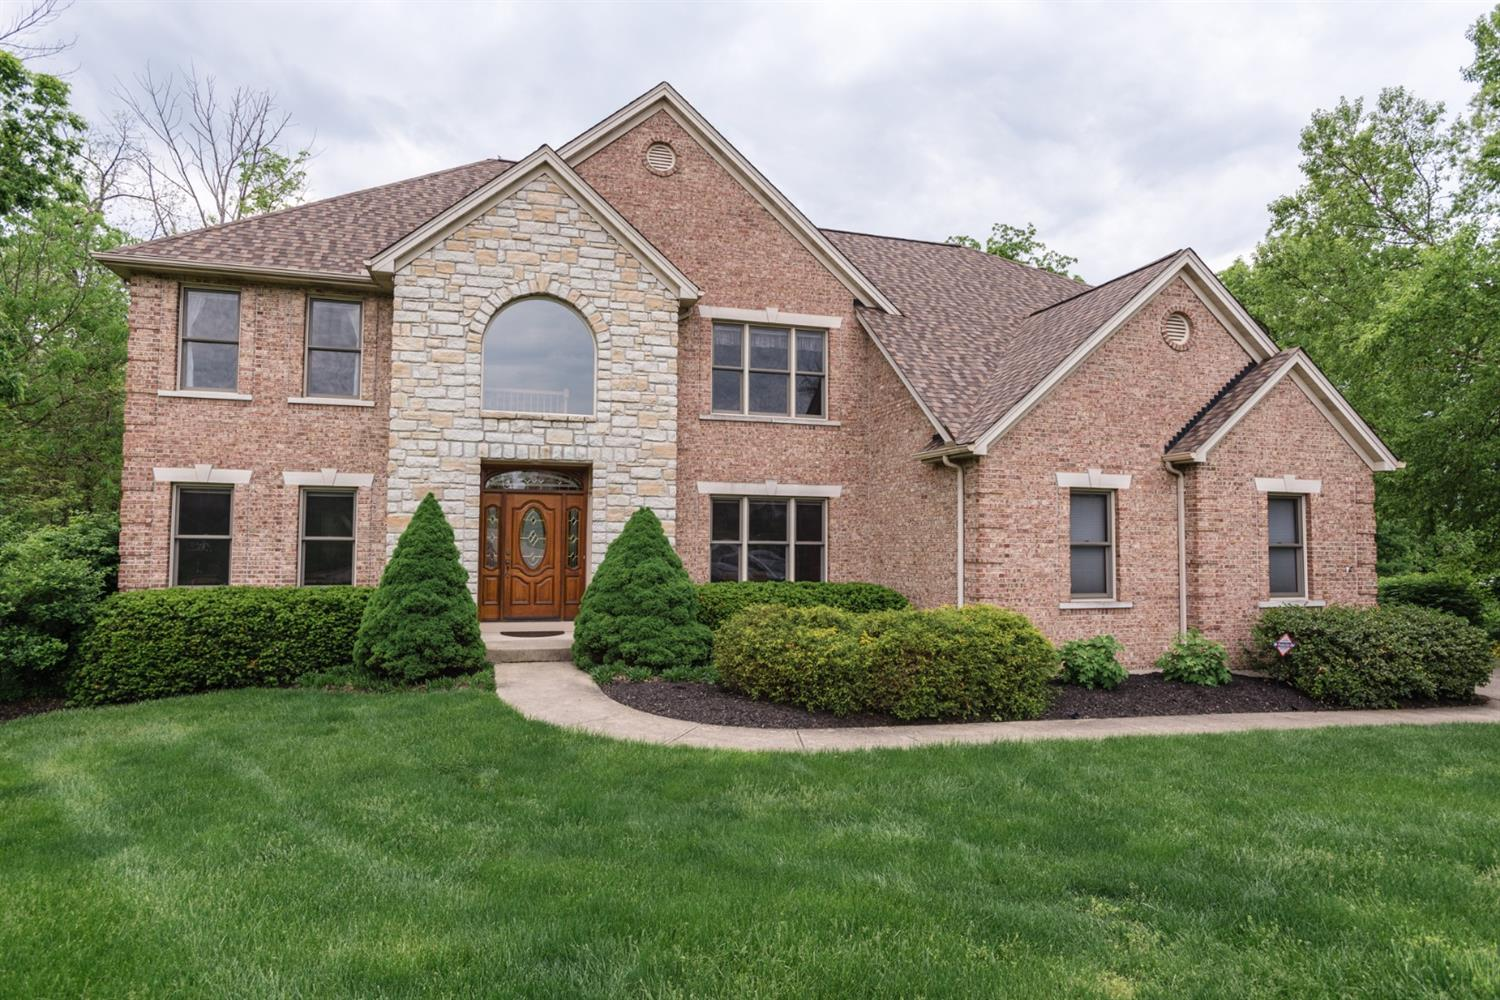 Property for sale at 4455 Longwood Court, Liberty Twp,  Ohio 45011